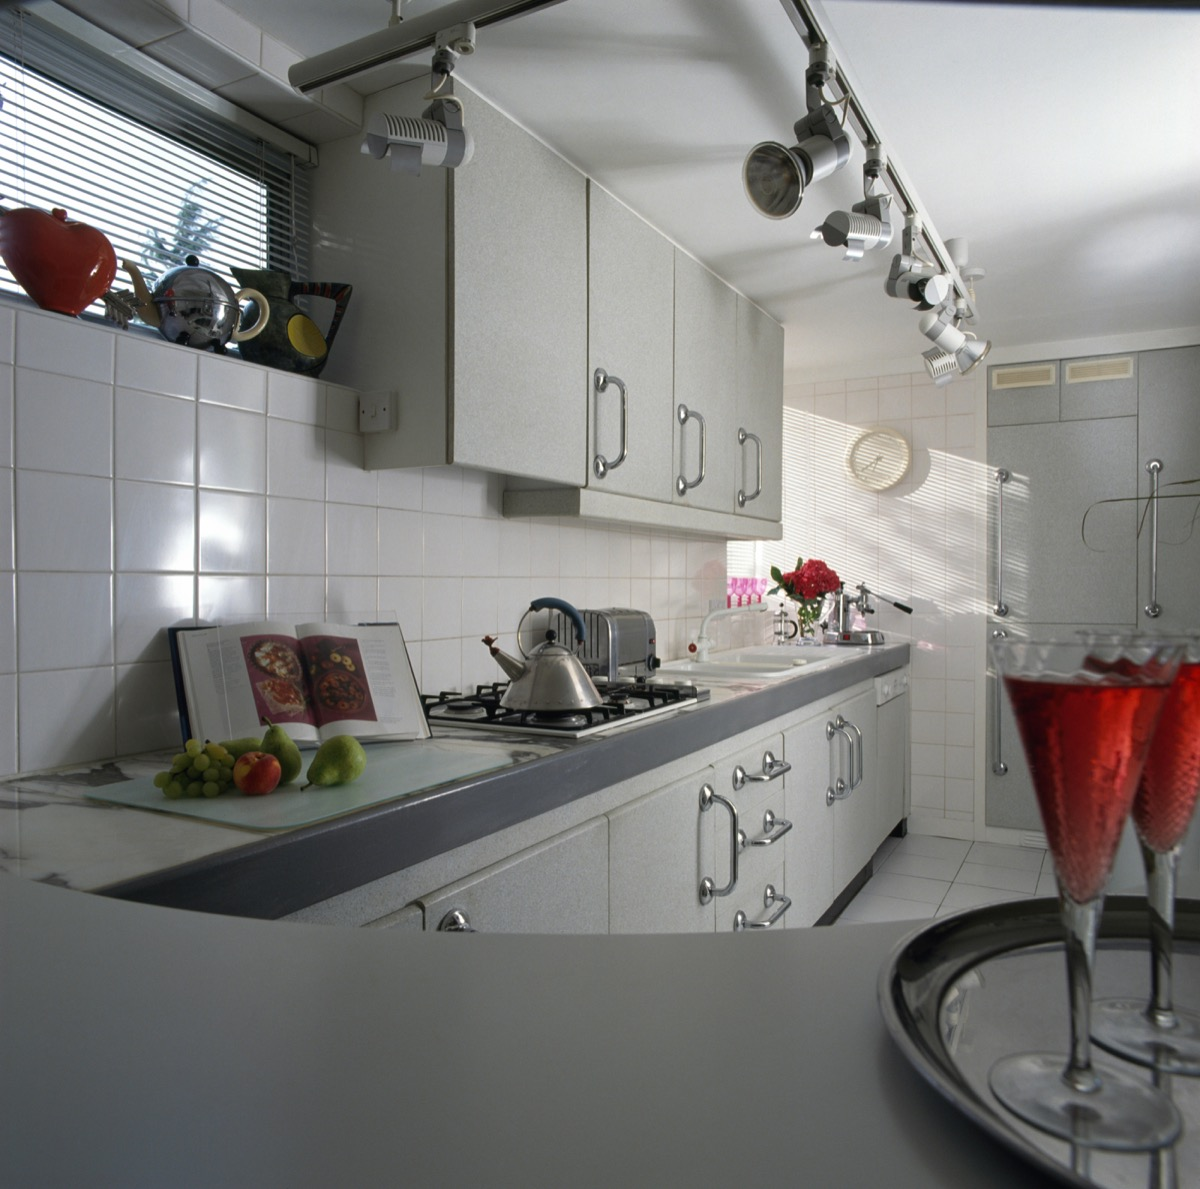 Track spotlights and white tiling in a nineties kitchen with pale gray fitted units and an Alessi kettle on the hob